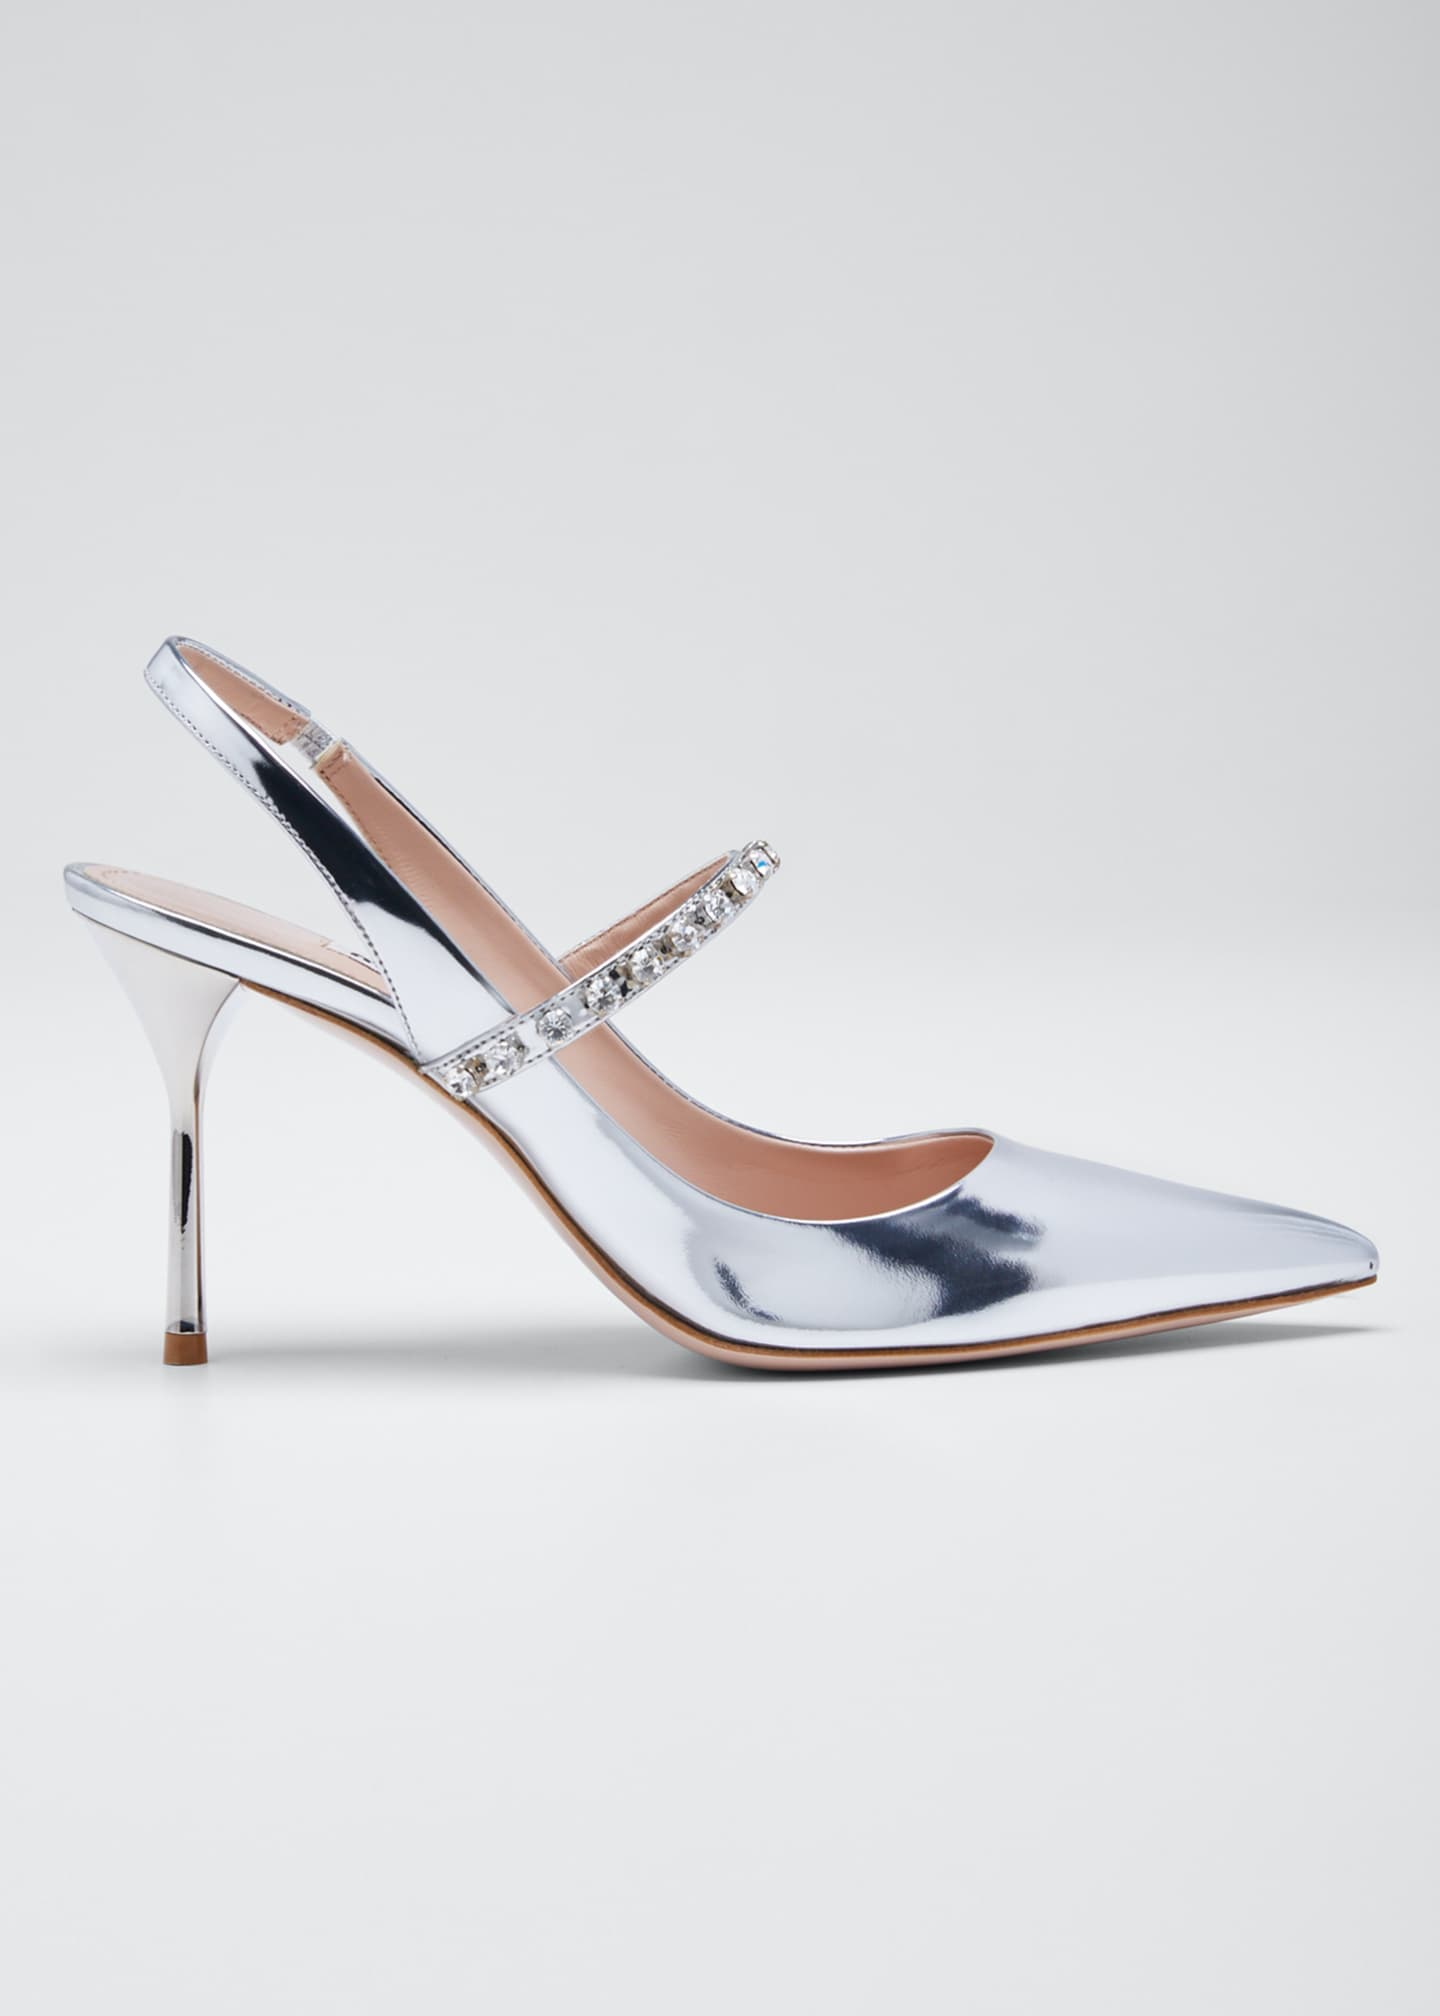 Miu Miu Pointed Metallic Crystal Pumps